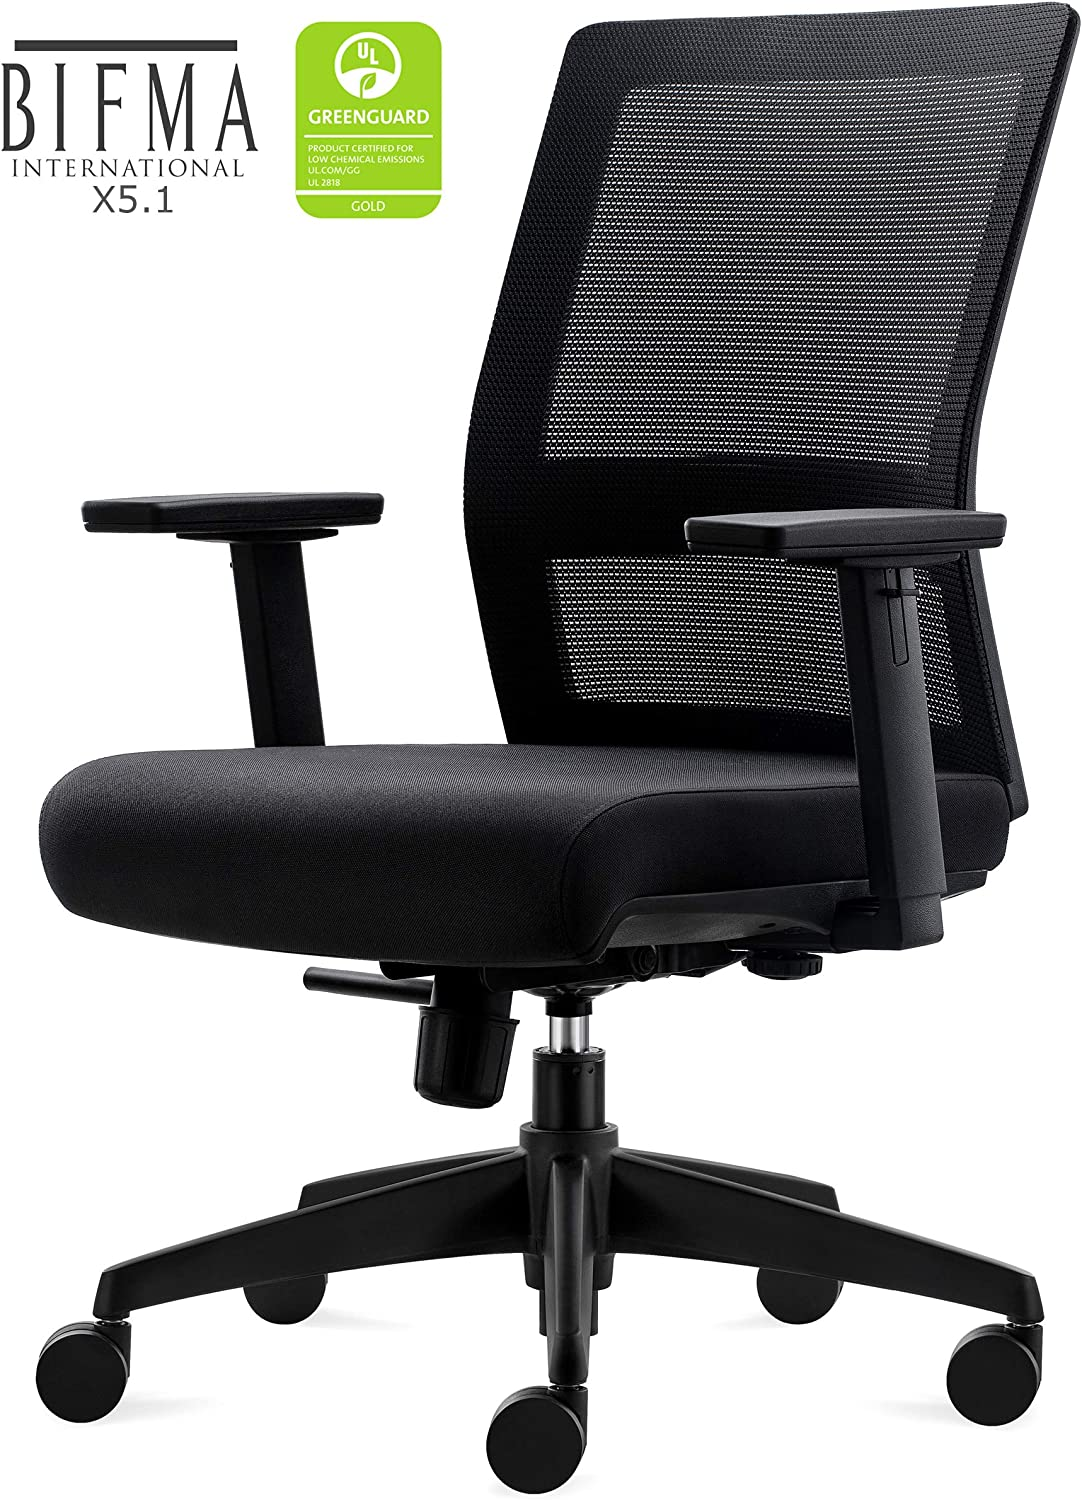 CHAIRLIN Big and Tall 350LB Home Office Task Chair, Ergonomic Executive Desk Rolling Swivel Chair Adjustable Armrests Mesh High Back Computer Chair with Lumbar Support for Women, Men